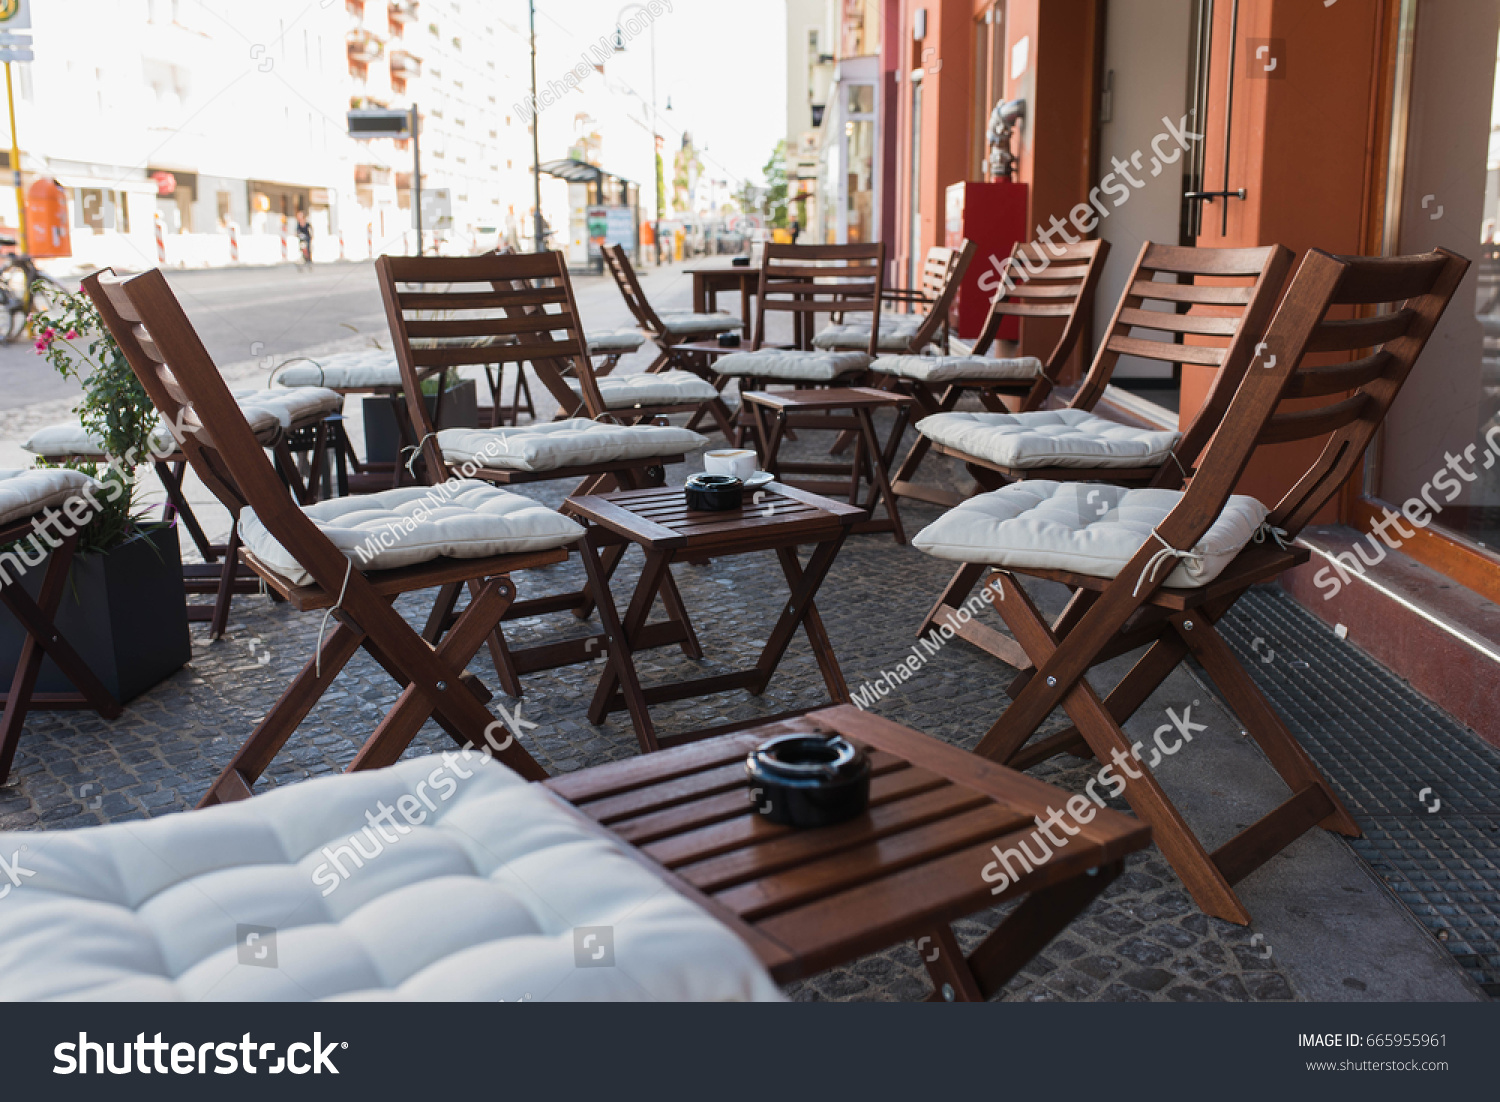 Beautiful outdoor cafe setting. Chairs with cushions and small tables at a coworking space and & Beautiful Outdoor Cafe Setting Chairs Cushions Stock Photo (Download ...